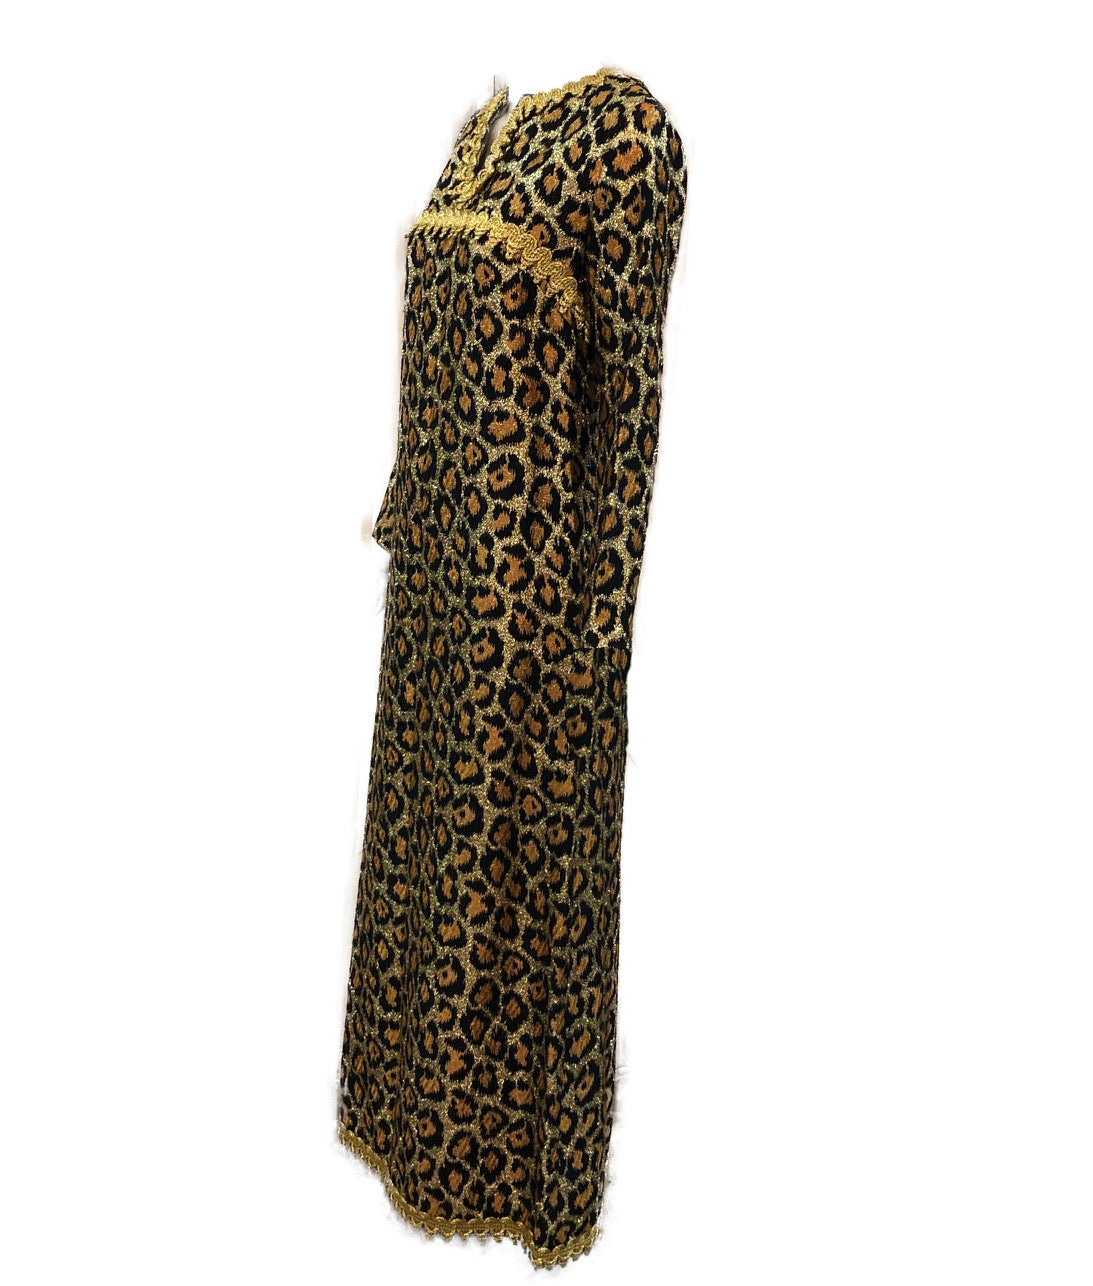 Outrageous 1960 Leopard Print Lame Gown Side 2 of 5